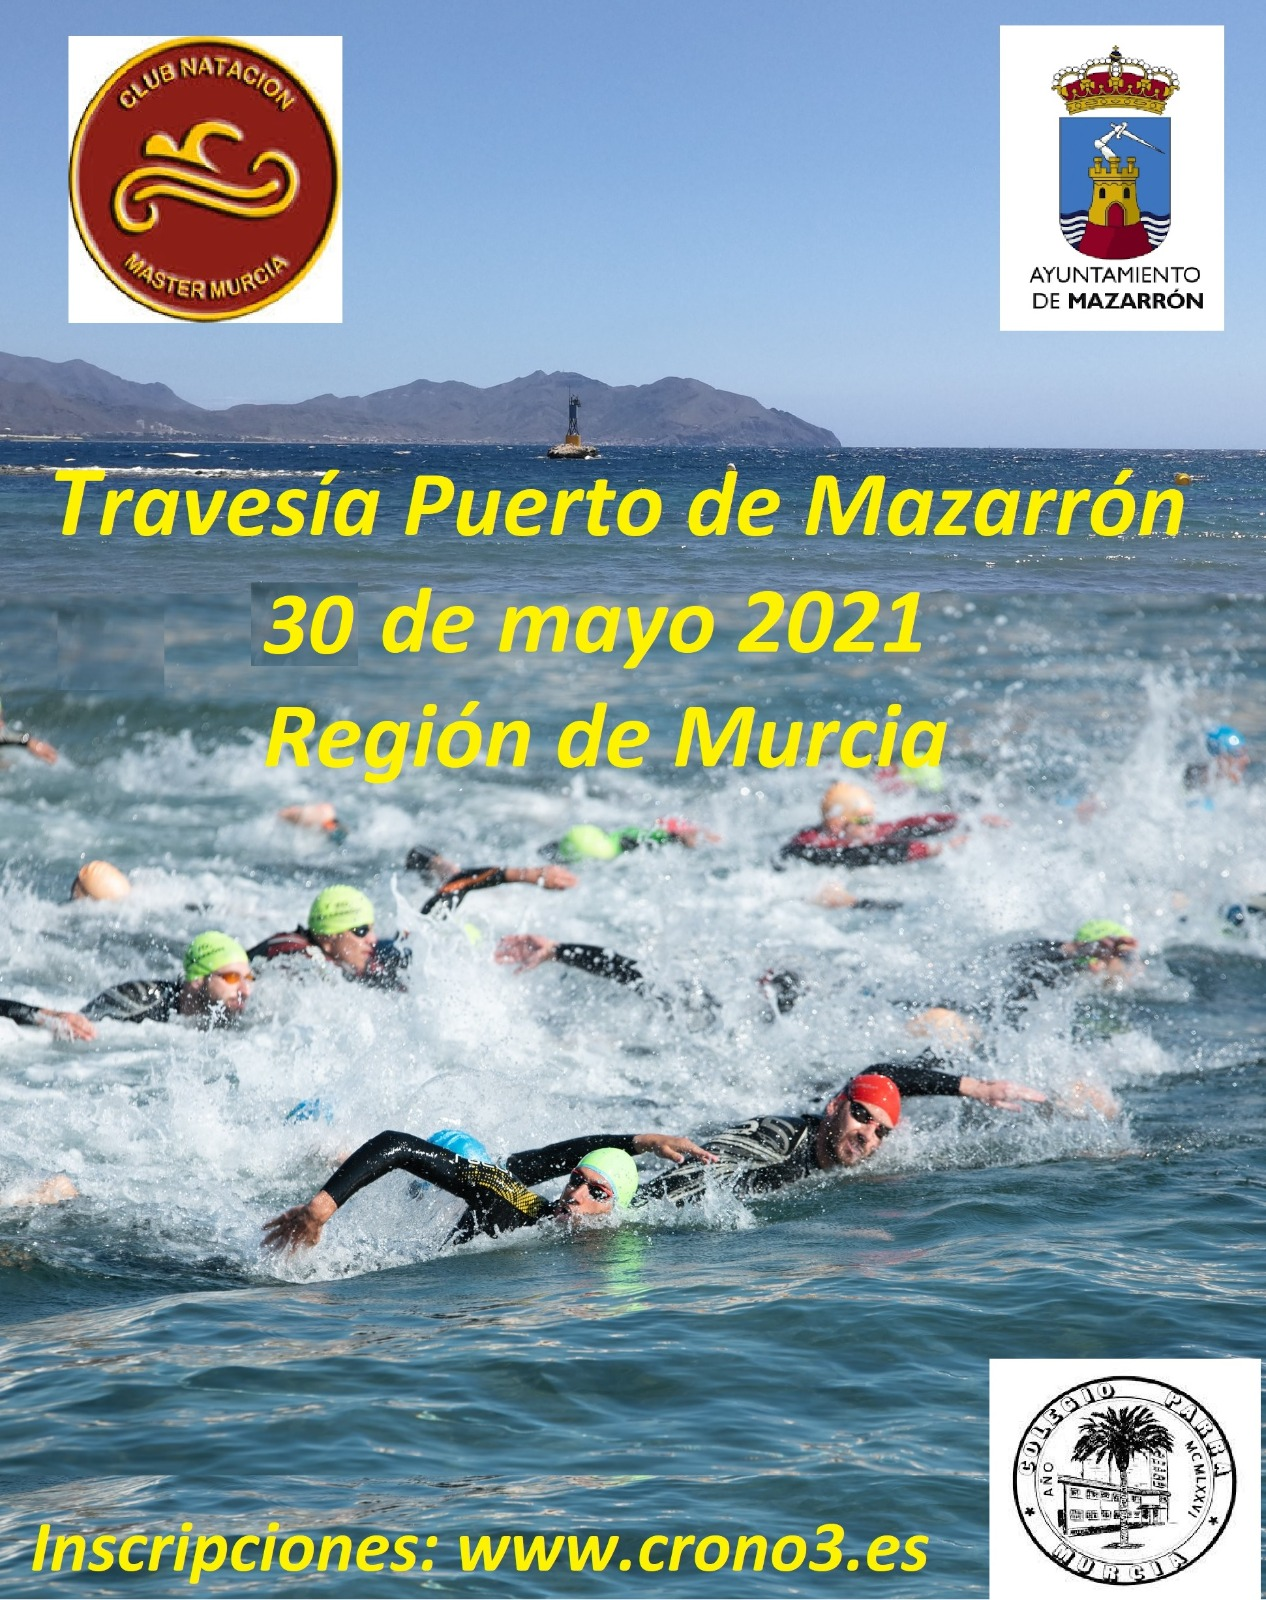 200 SWIMMERS WILL GET AN APPOINTMENT AT THE 'CROSSING PUERTO DE MAZARRÓN'